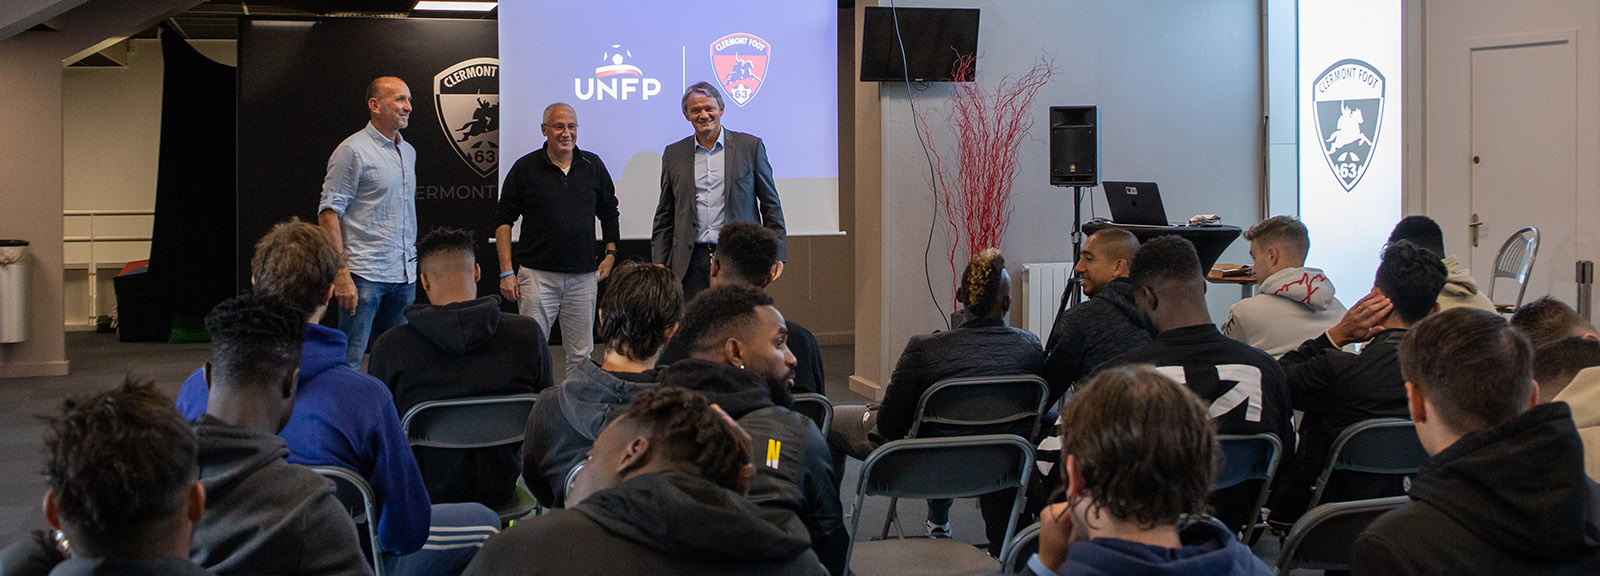 UNFP visit to Clermont Foot – Clermont Foot